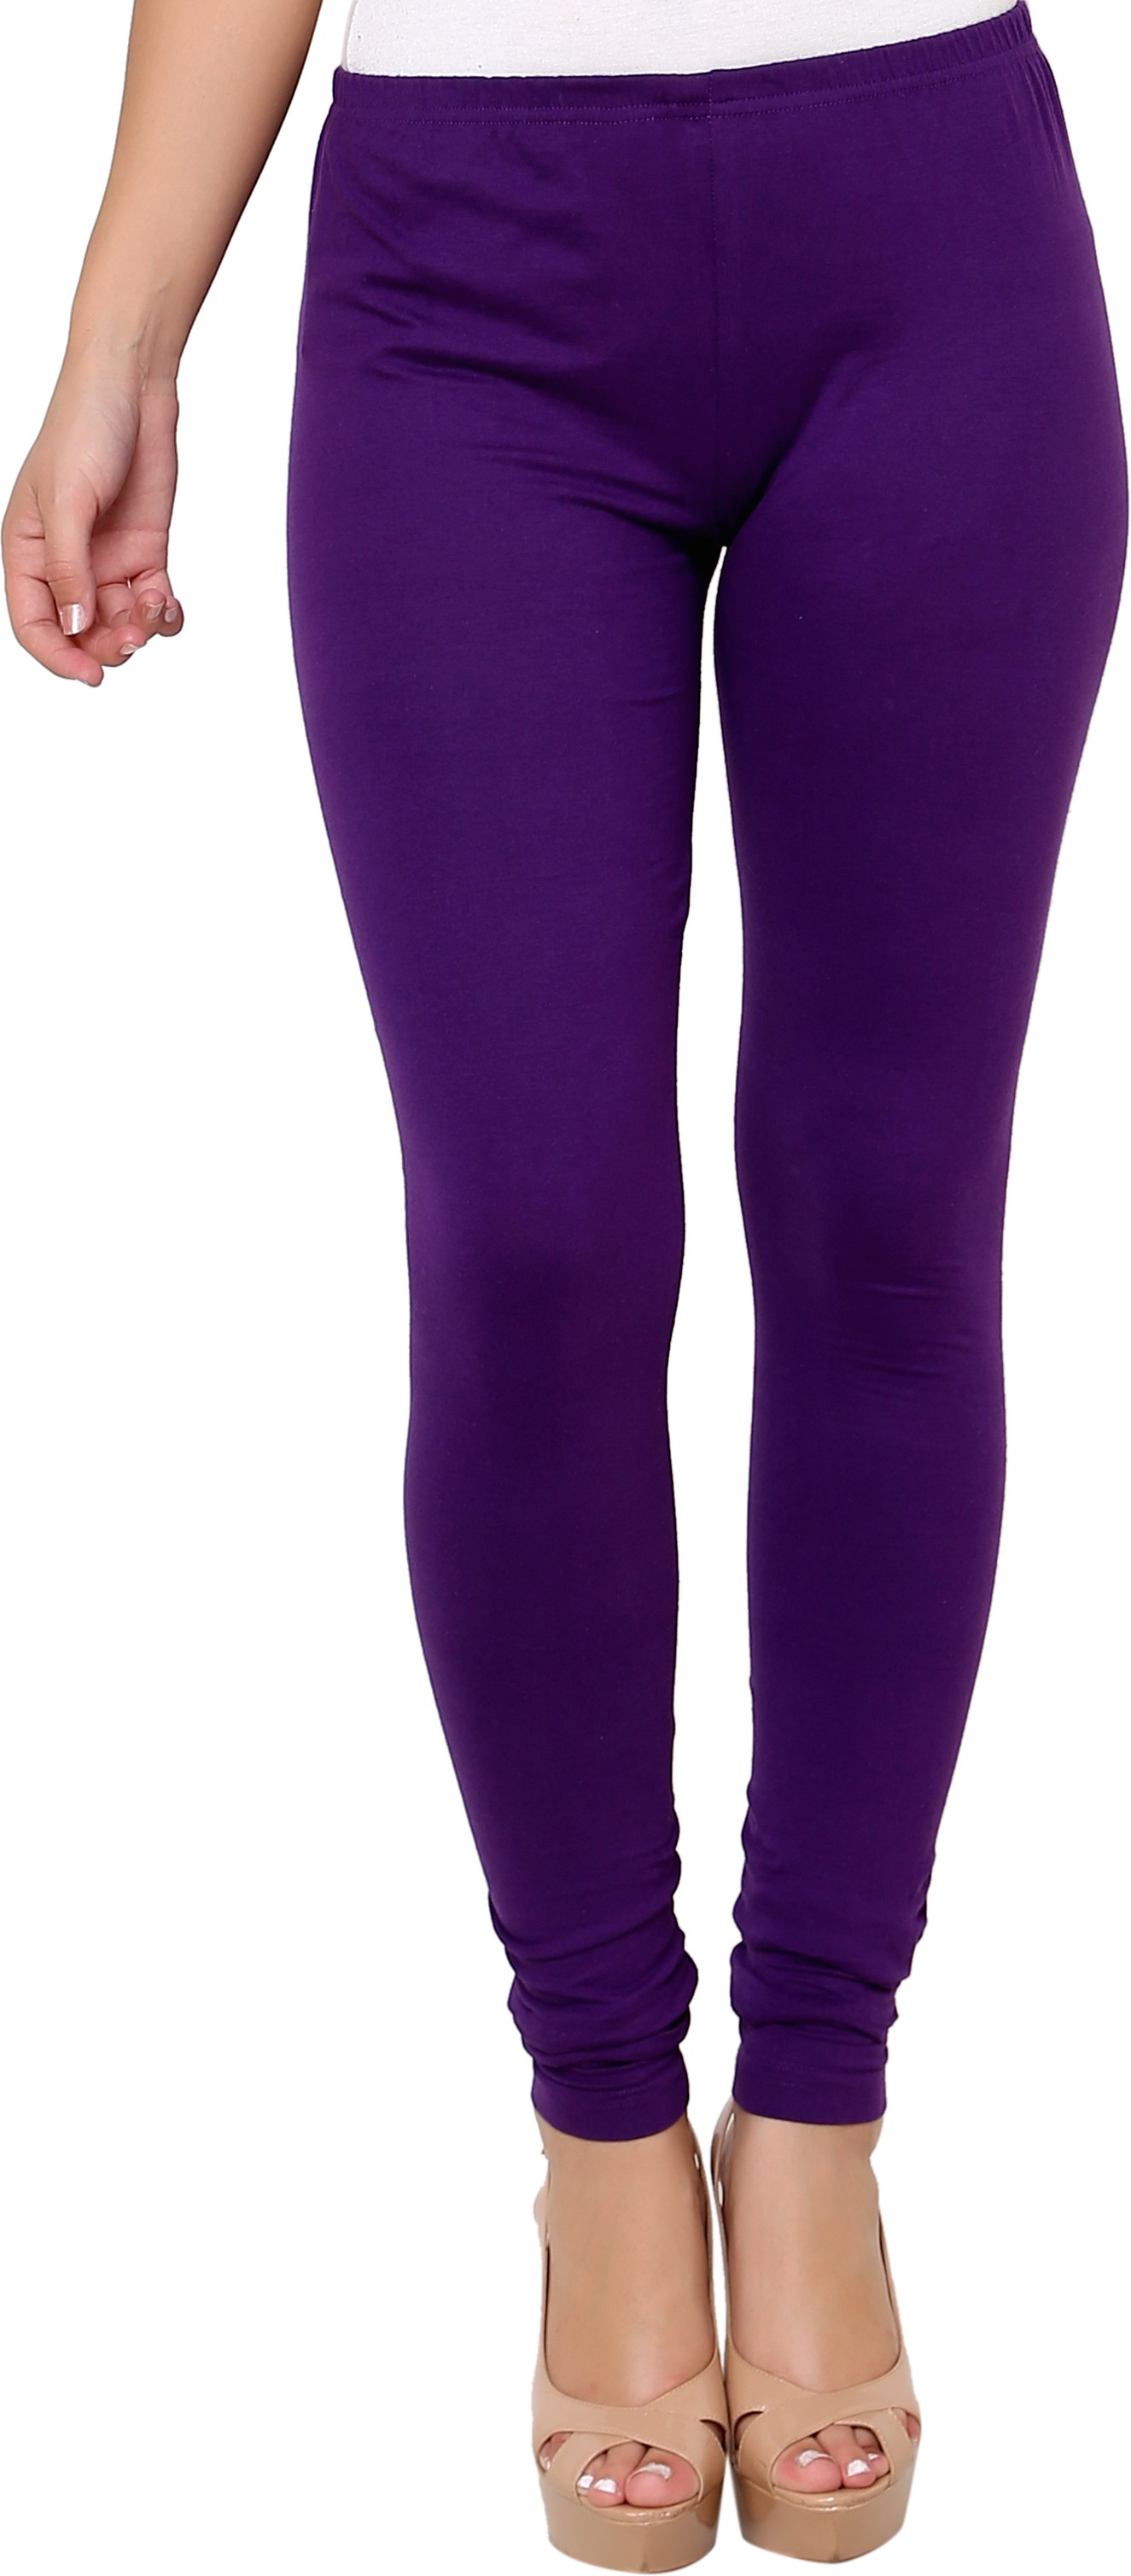 Leebonee Womens Purple Leggings